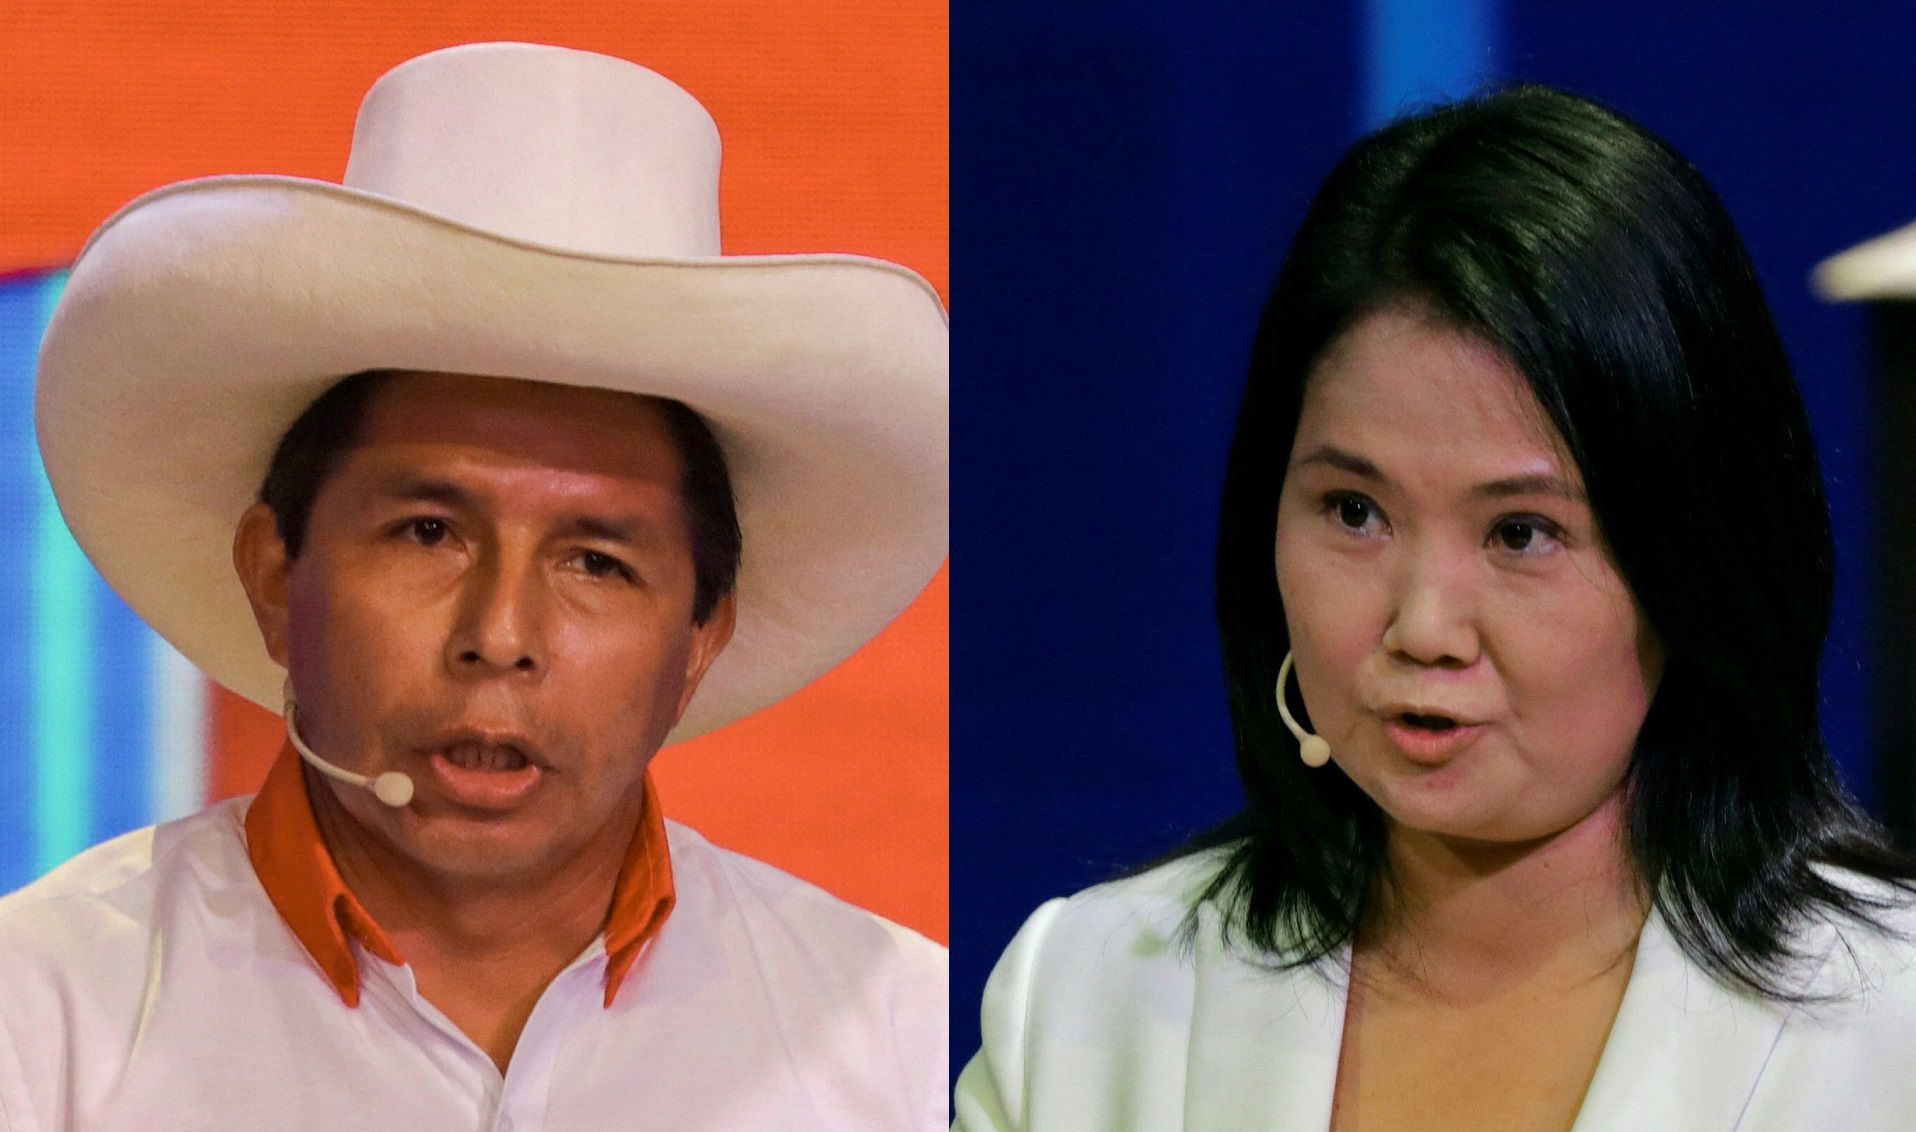 (COMBO) This combination of pictures created on April 13, 2021 shows Peruvian presidential candidate for the Free Peru Party, Pedro Castillo (L), and Peruvian presidential candidate for the Popular Force Party, Keiko Fujimori, speaking during the televised debate organized by the National Electoral Jury in Lima on March 30 and 29, 2021, respectively. - Radical left unionist Pedro Castillo and rightwing populist Keiko Fujimori will vie for the presidency of Peru in a runoff election on June 6, 2021, after the results of April 11 first round showed them pulling ahead of the other 16 candidates. (Photos by Sebastian CASTANEDA / POOL / AFP)